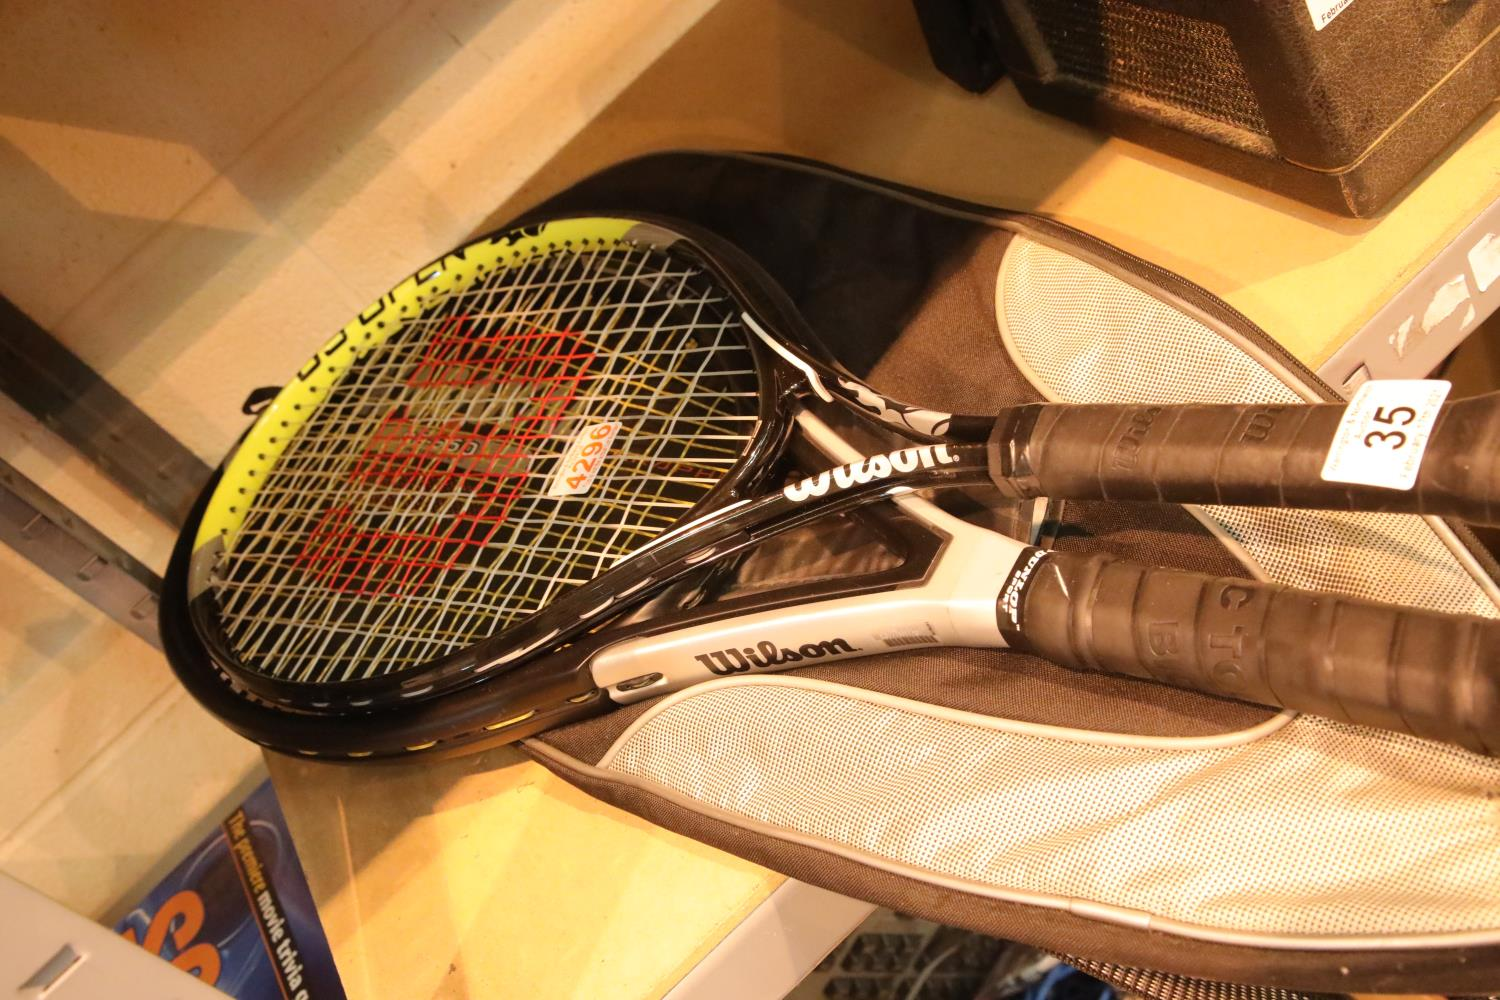 Wilson US Open and triad graphite tennis rackets and covers. P&P Group 3 (£25+VAT for the first